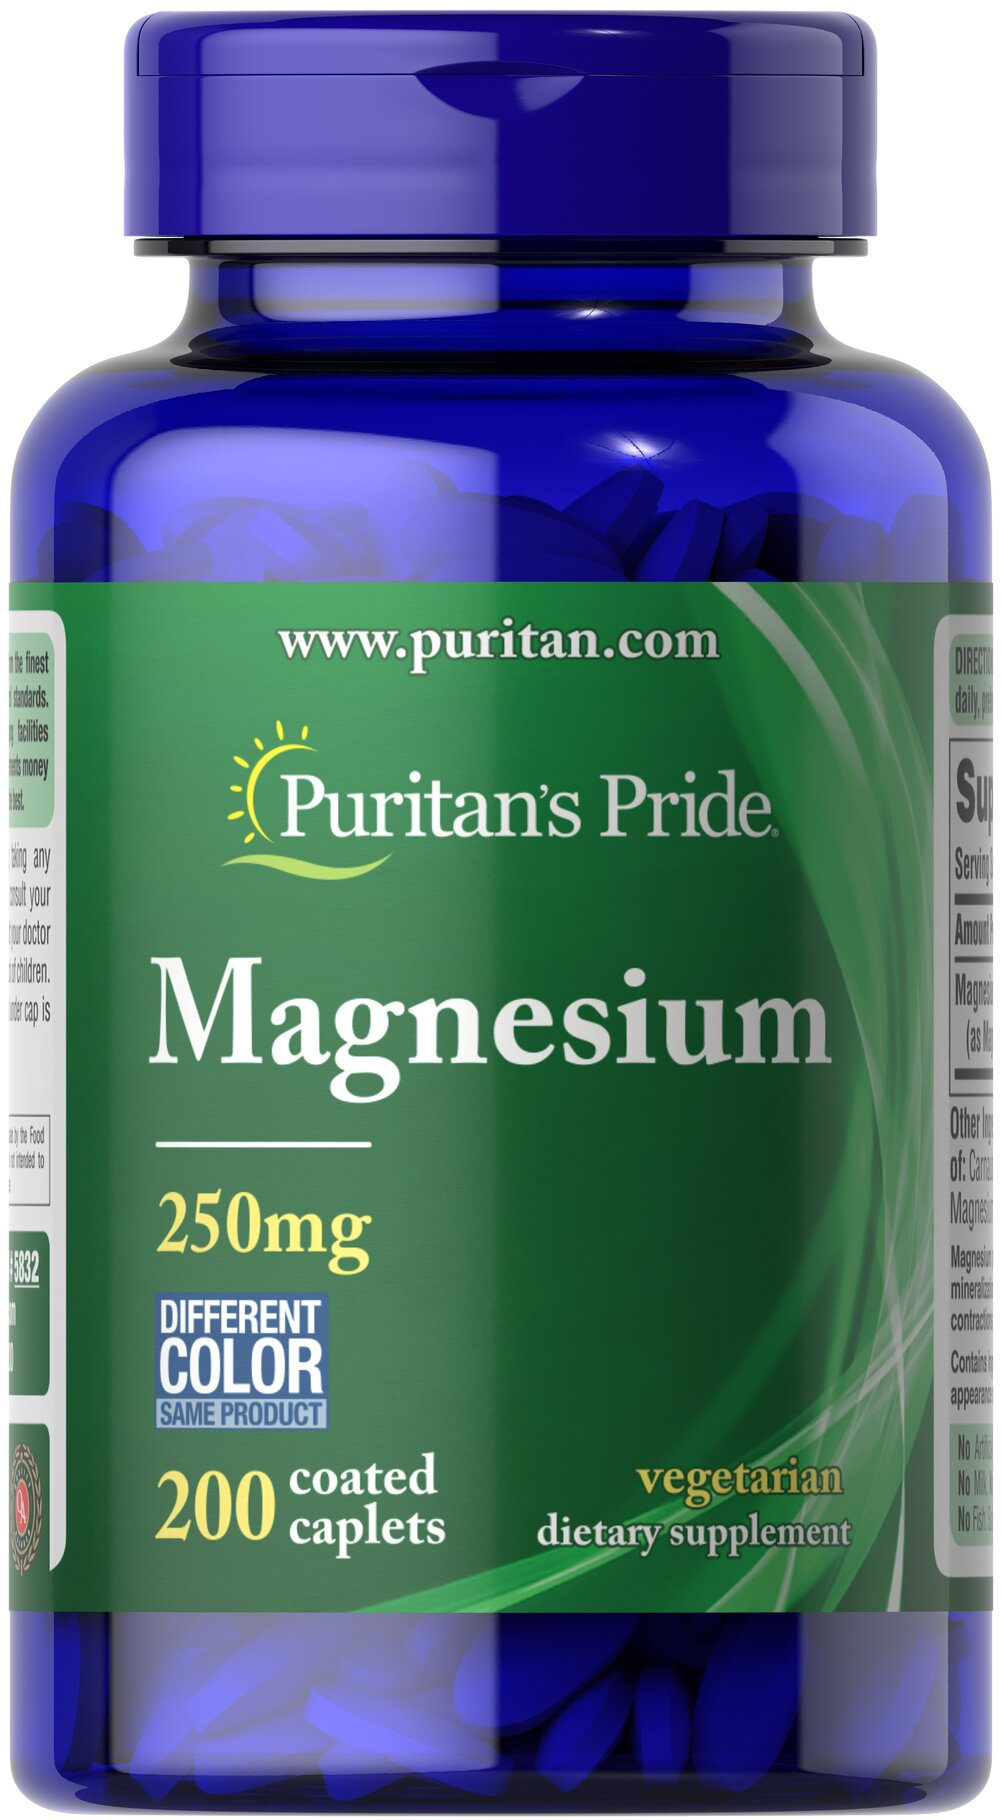 Magnesium 250 mg <p>Magnesium offers another option, besides Calcium, for supporting bone health.** Magnesium plays an essential role in maintaining bone mineralization, and is also involved in muscle contractions and nerve impulses.** Adults can take one caplet daily with a meal.</p> 200 Caplets 250 mg $13.99